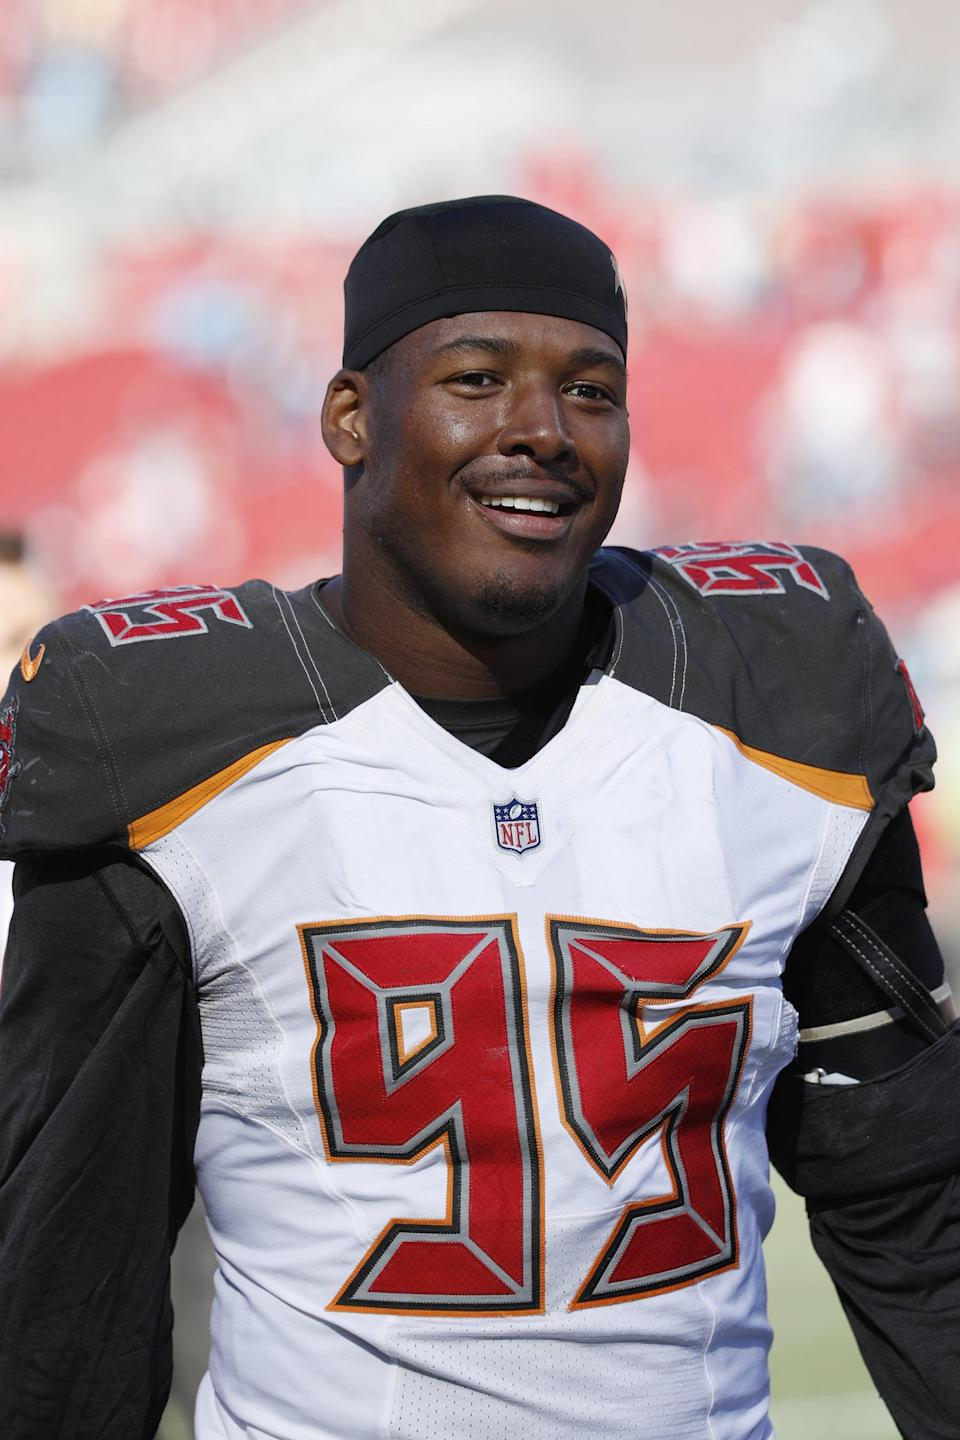 """<p>Football player Ryan Russell, who played for the Tampa Bay Buccanneers and the Dallas Cowboys, became the first openly bisexual NFL player when he came out in 2019. </p> <p>""""In nobody's worlds should being careful mean not being yourself,"""" Russell wrote in an essay for ESPN. The career you choose shouldn't dictate the parts of yourself that you embrace."""" He went on to talk address the NFL's potential for embracing different sexualities, writing, """"I can tell you from experience that as long as a teammate contributes to success on the field and in the locker room, NFL players aren't concerned about who their defensive linemen date . . . The NFL is a multibillion-dollar entertainment entity with the power to create working conditions that allow LGBTQ people to perform their jobs like everyone else. . . There are a lot of problems in the world, and a lot of issues facing the NFL. And I can say with confidence that LGBTQ players having the comfort to be themselves, date who they want, share parts of their life with friends and teammates will not rank among those issues.""""</p>"""